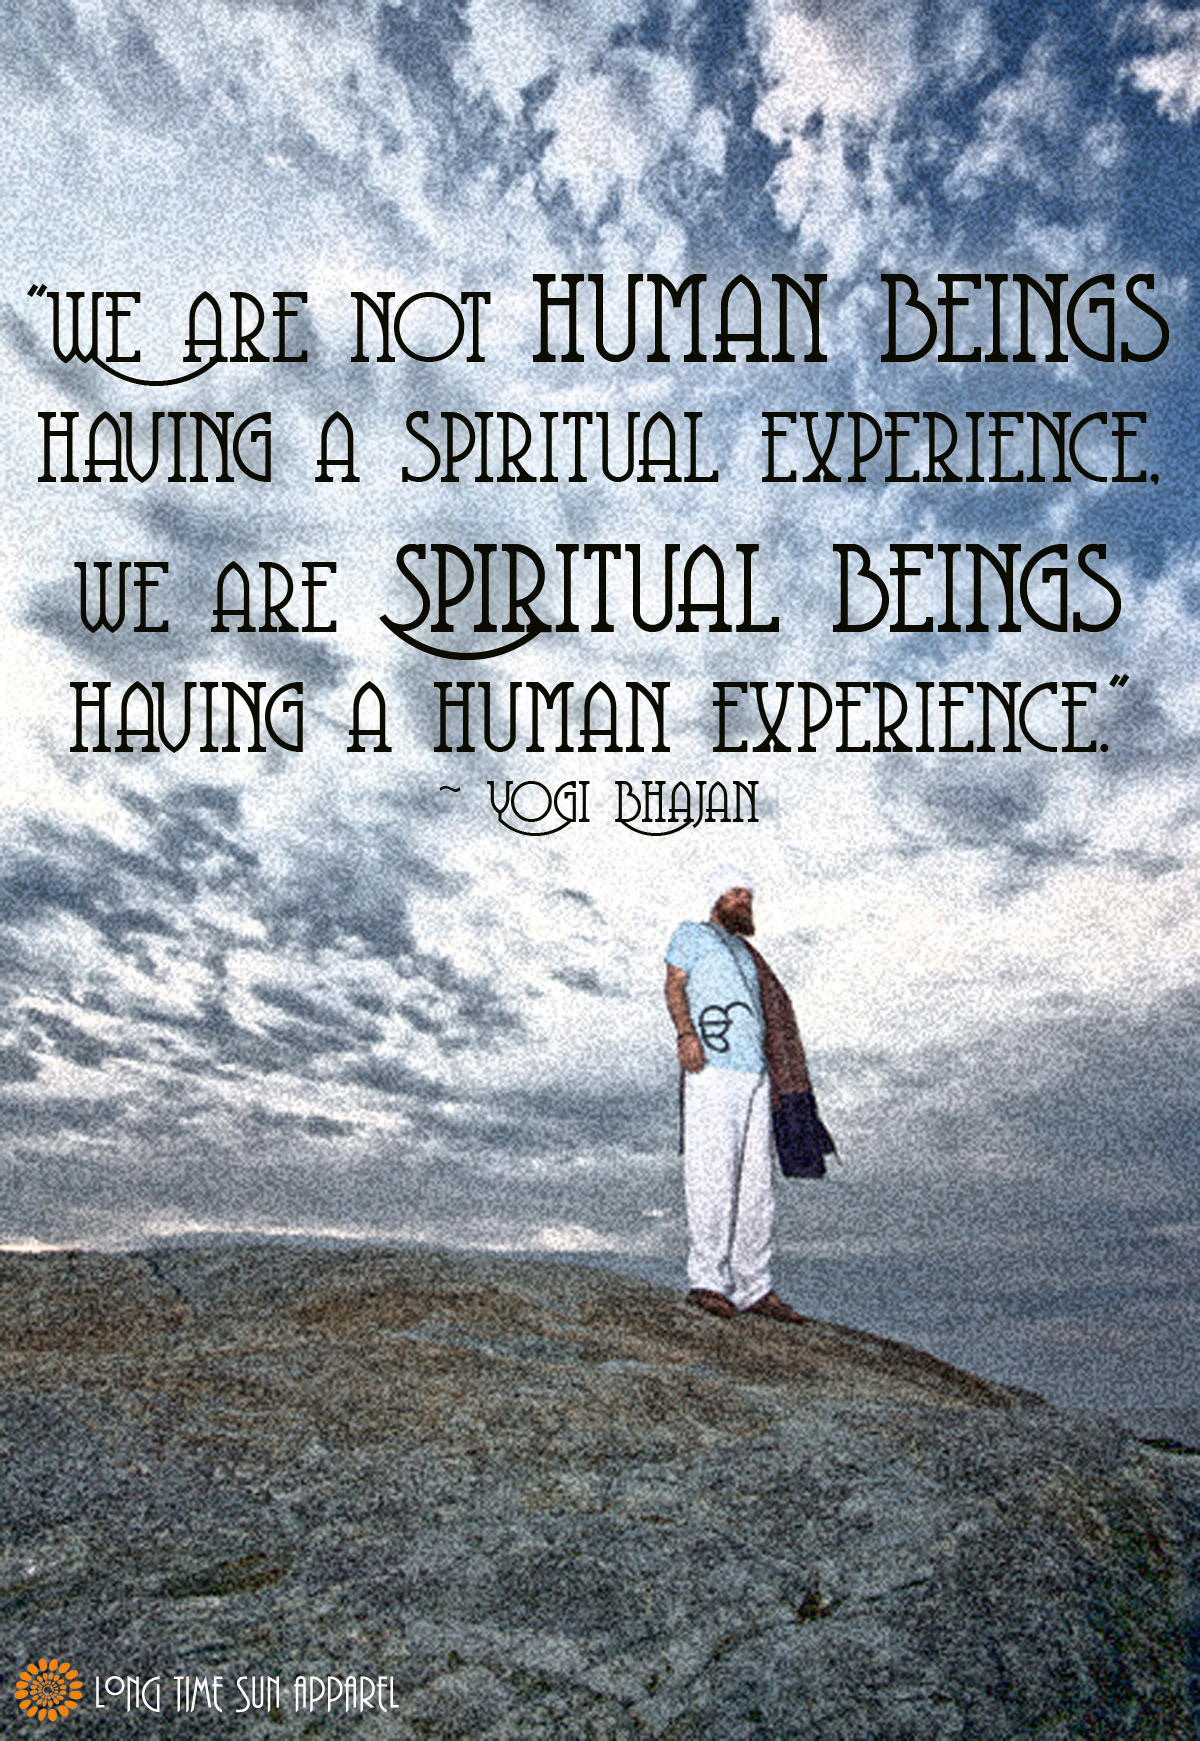 Yogi Bhajan Quote Loved and pinned by